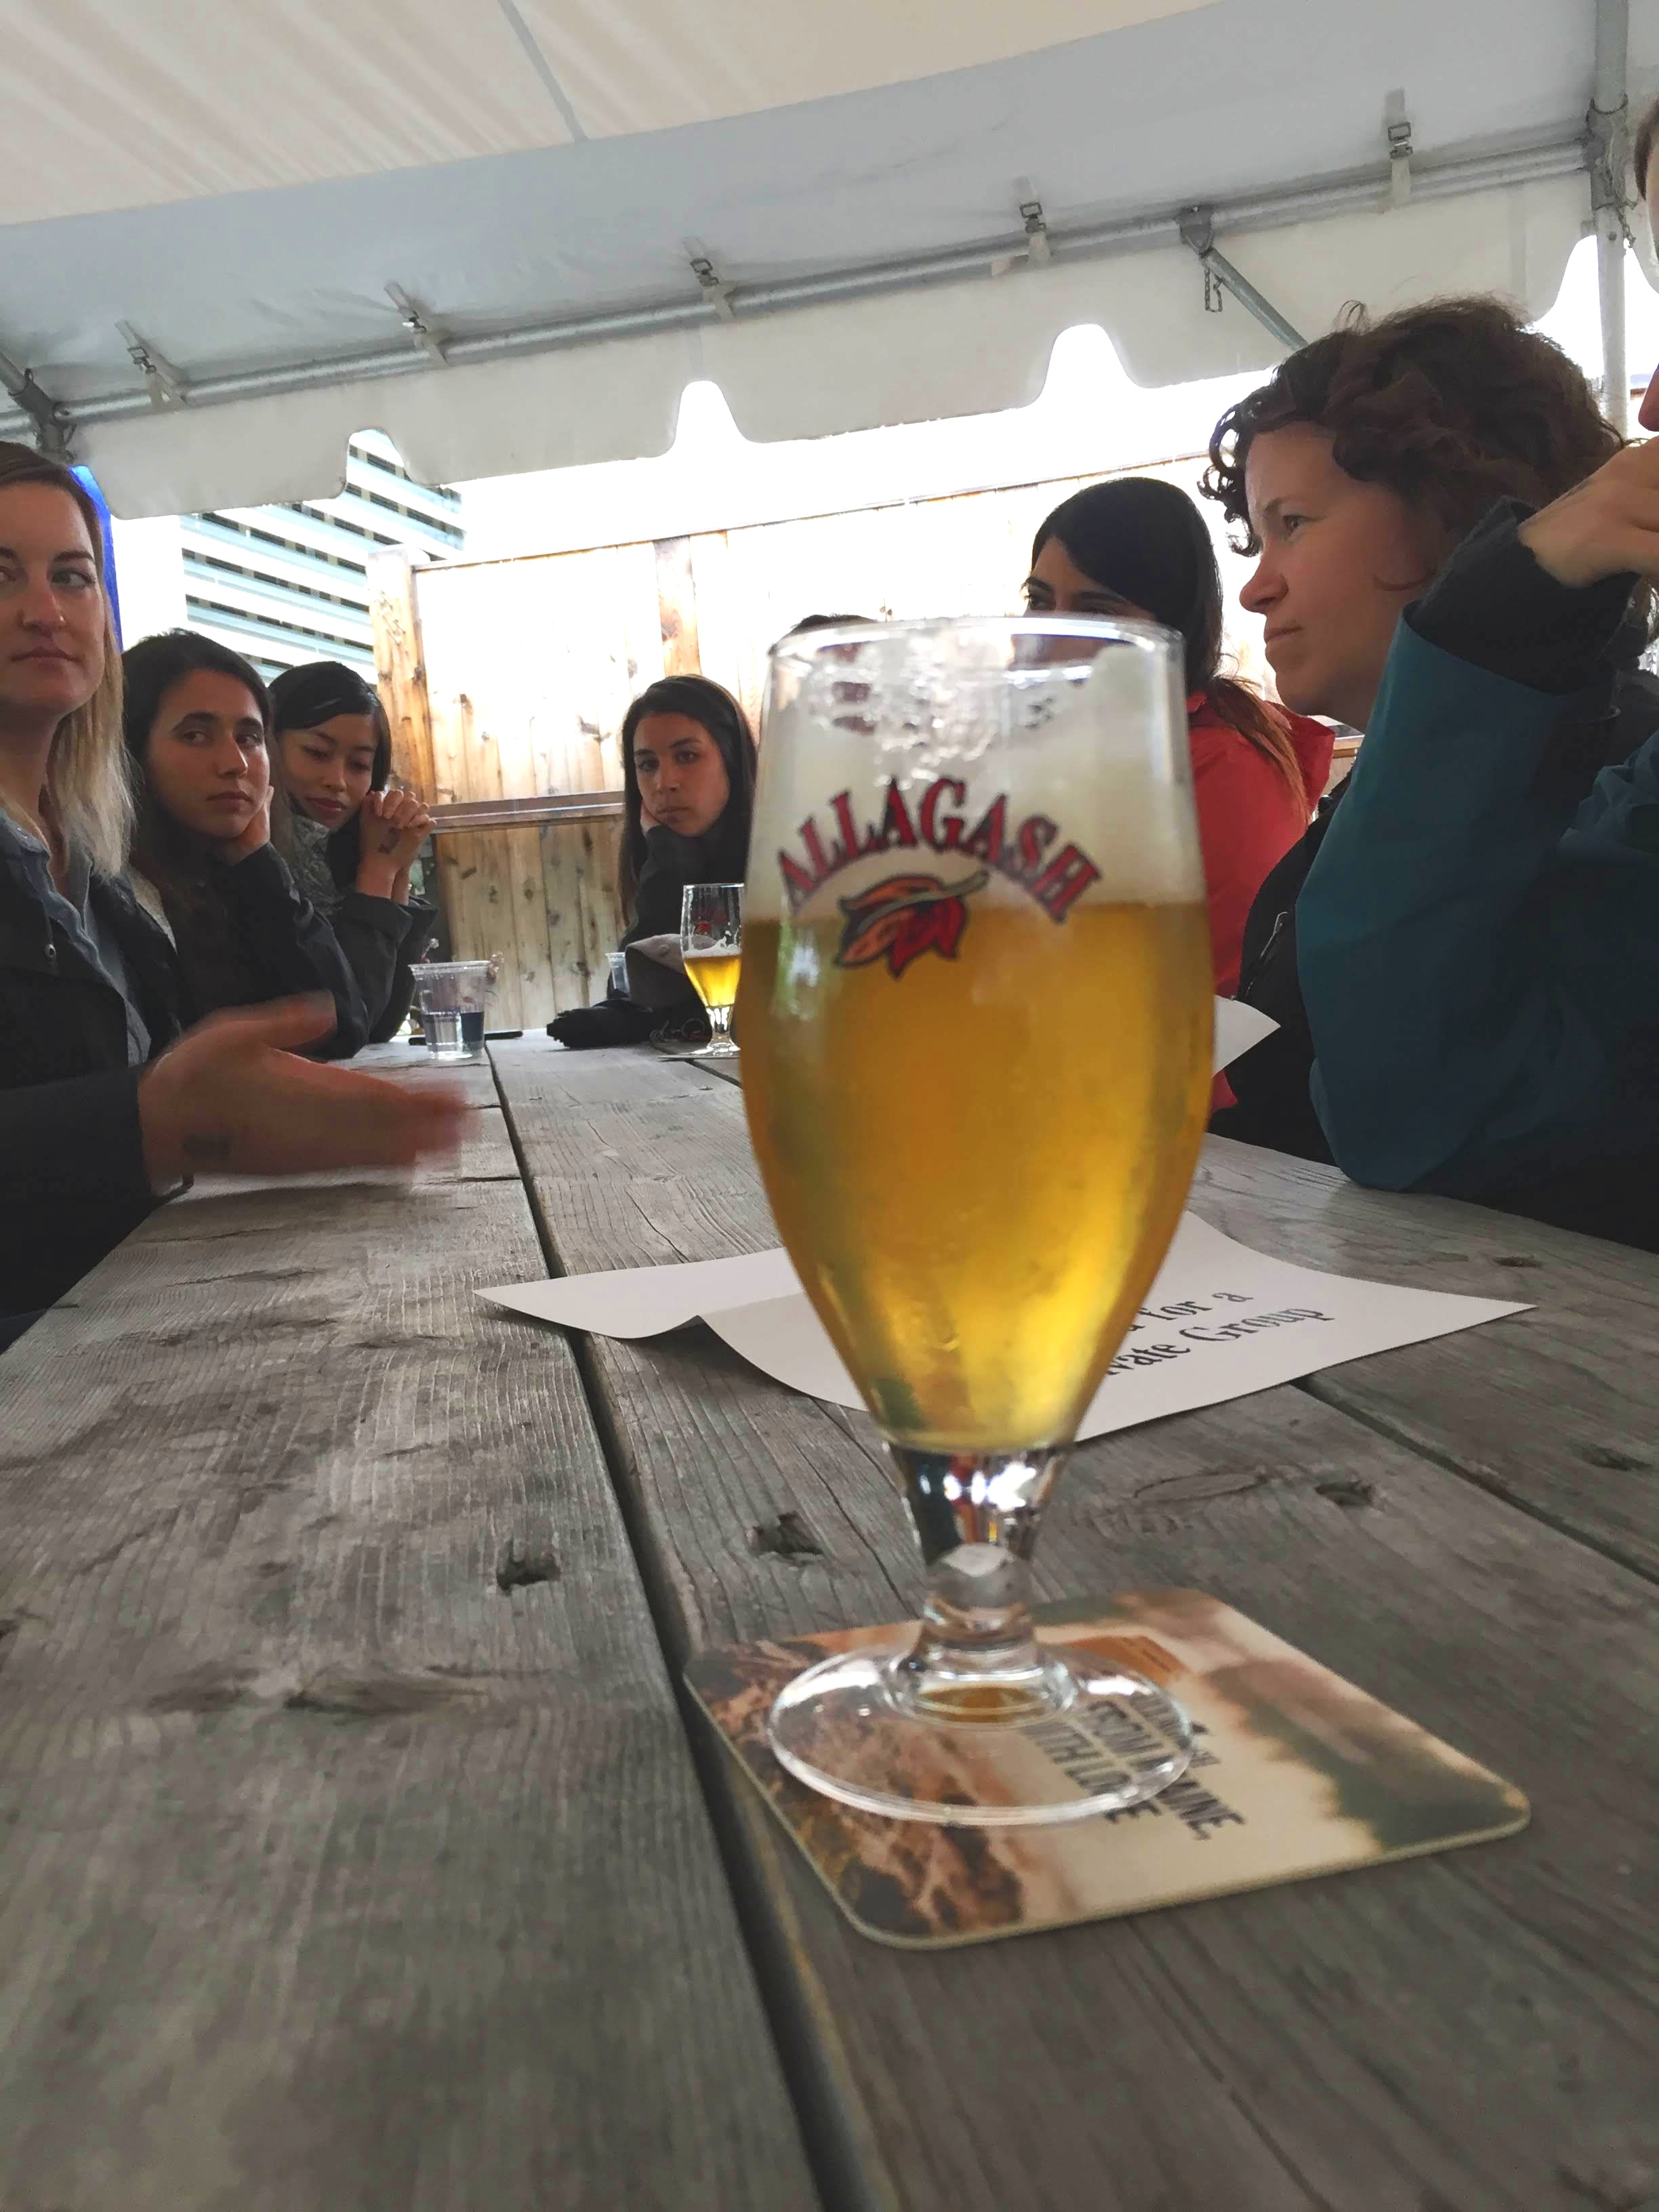 """I really loved the Allagash Brewery tour and how their culture related so well to our lab values – passion, persistence, innovation, collaboration, and maintaining high quality standards of what we put out to the world."" - - Yiwen"